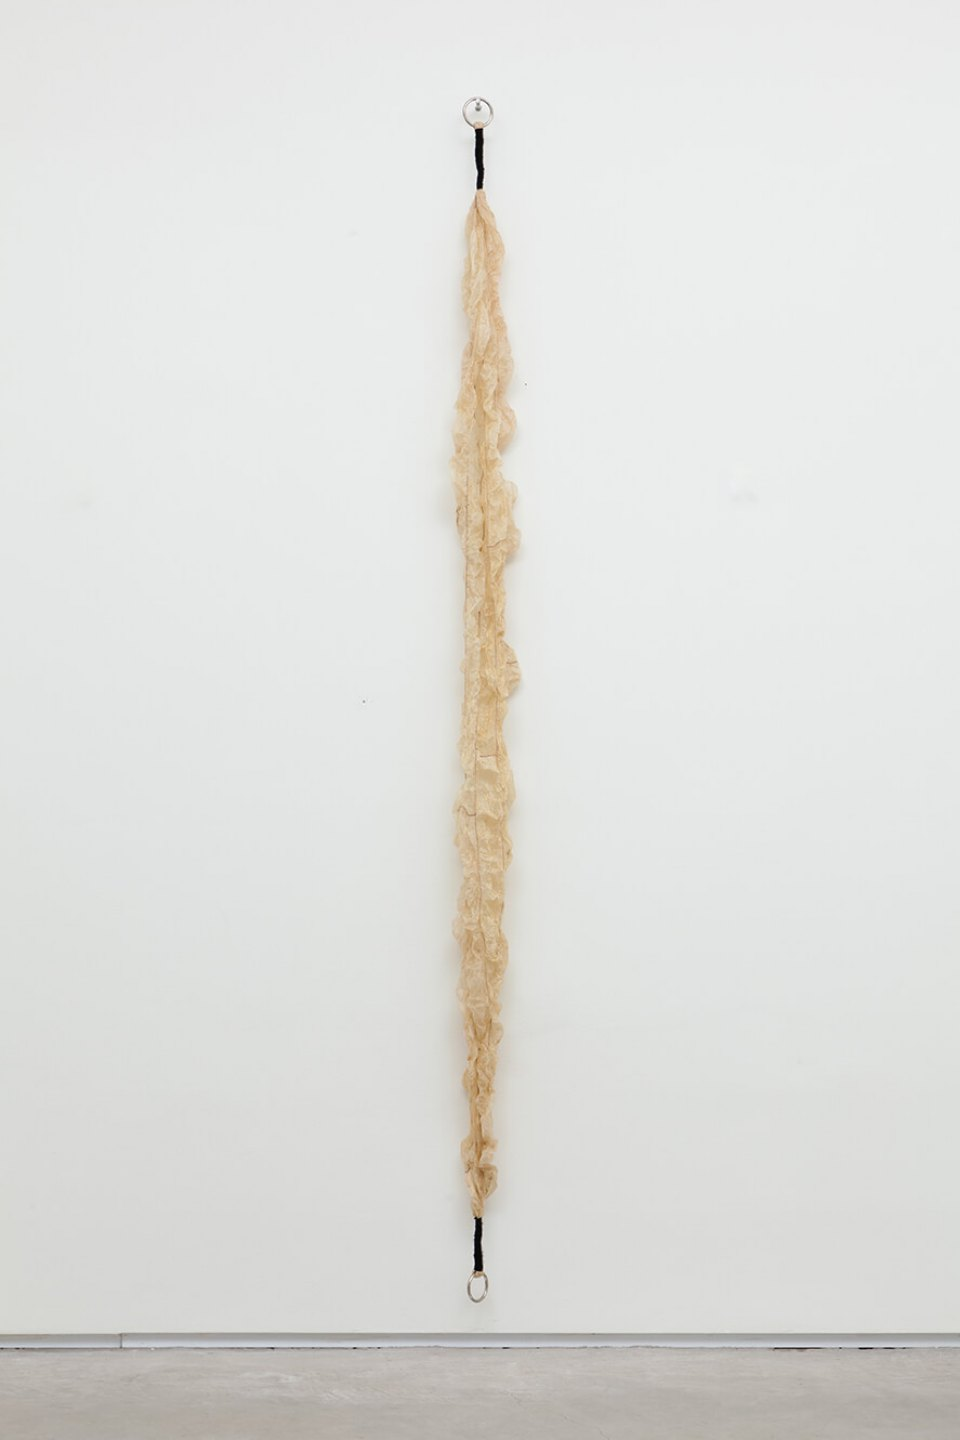 Paloma Bosquê, <em>Rope</em>, 2011/2016, ox gut, wool and metal rings, 207,5 × 9 × 9 cm - Mendes Wood DM